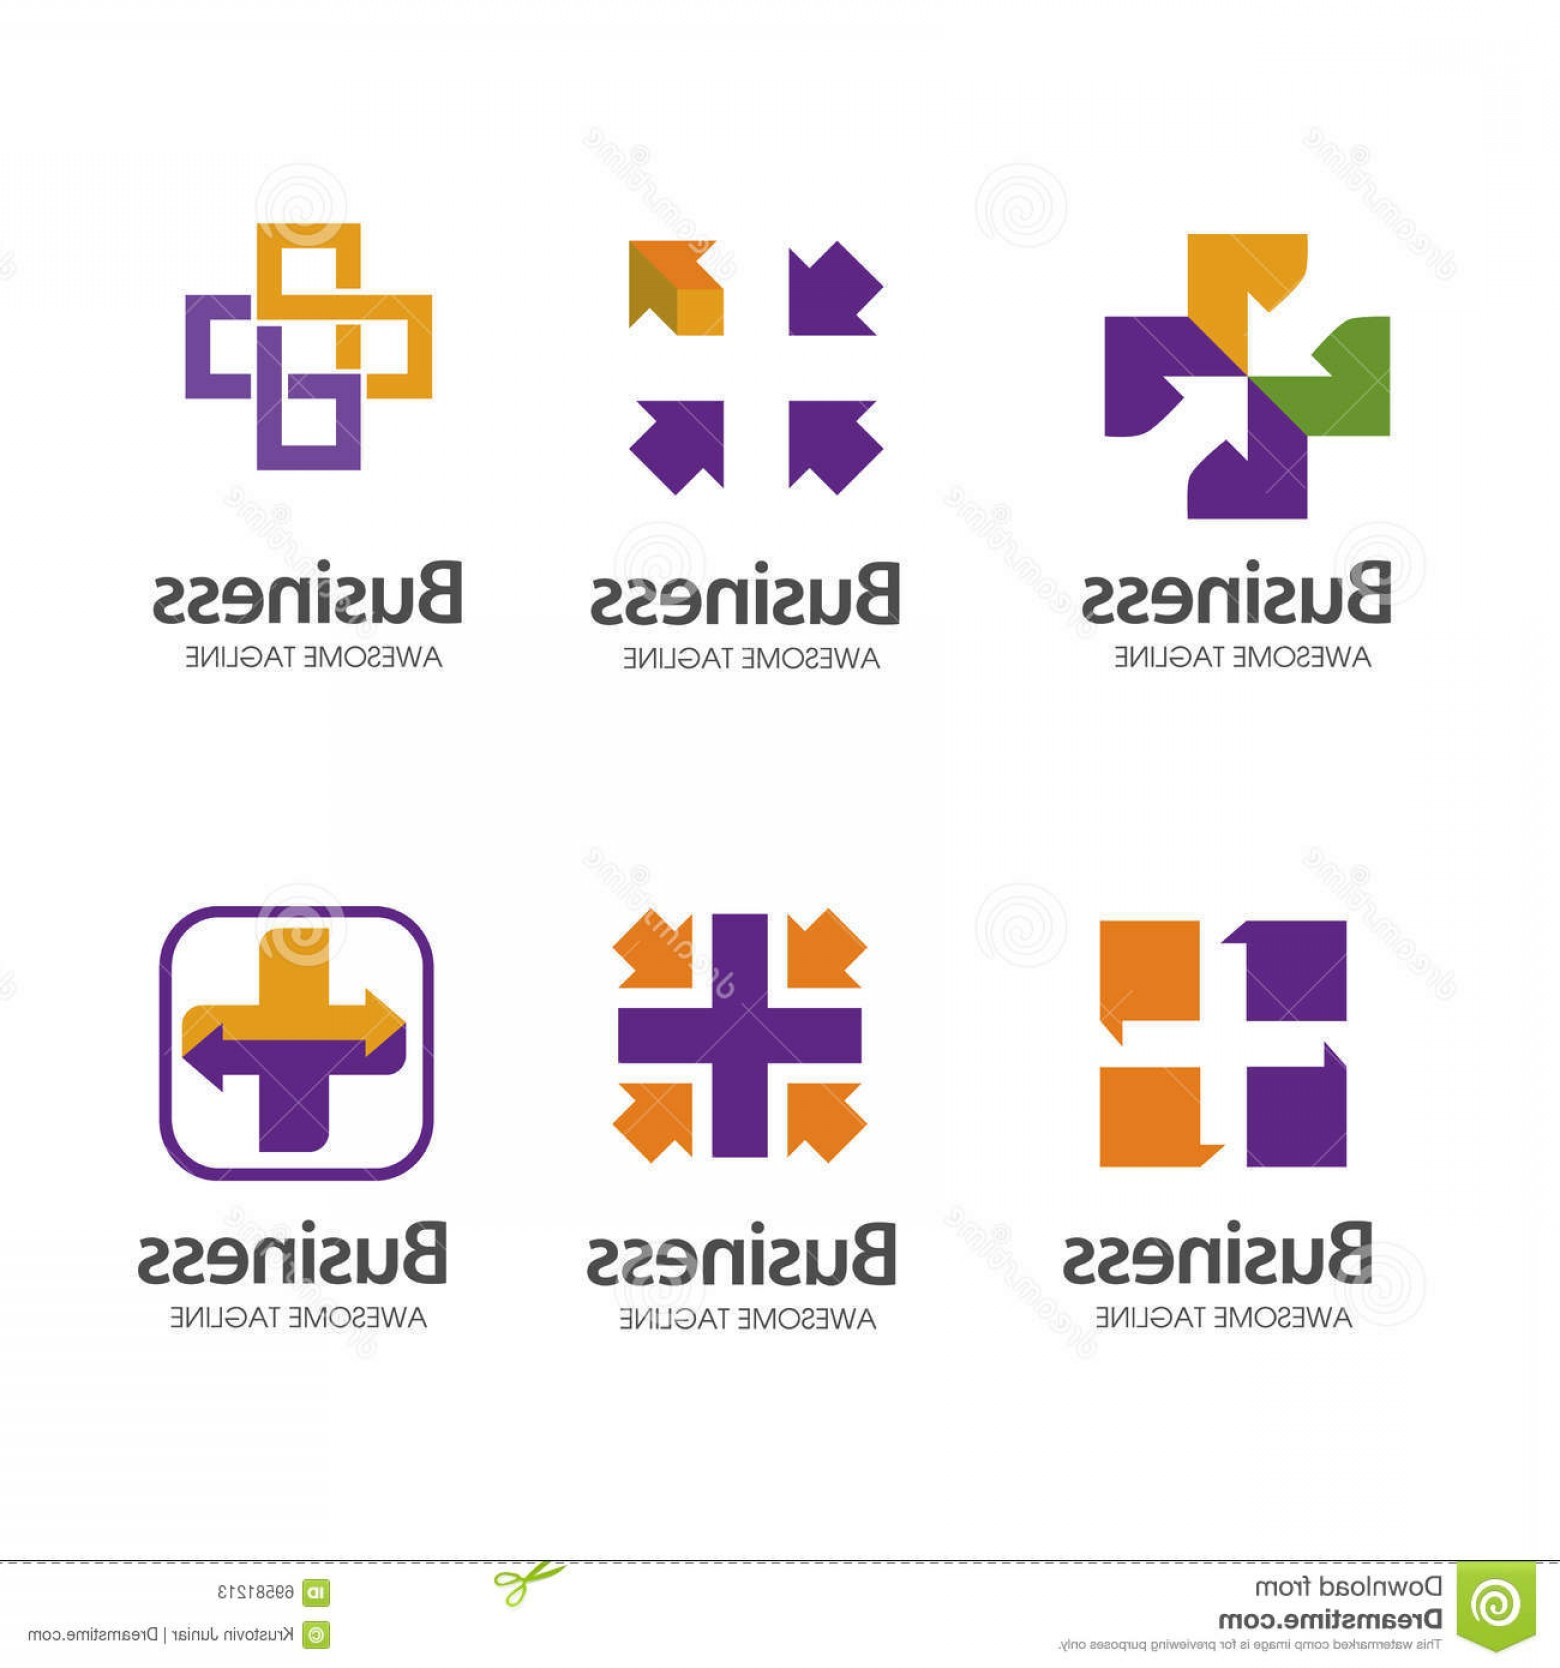 Share Logo Vector: Stock Illustration Health Cross Plus Medical Share Logo Icon Design Template Elements Image